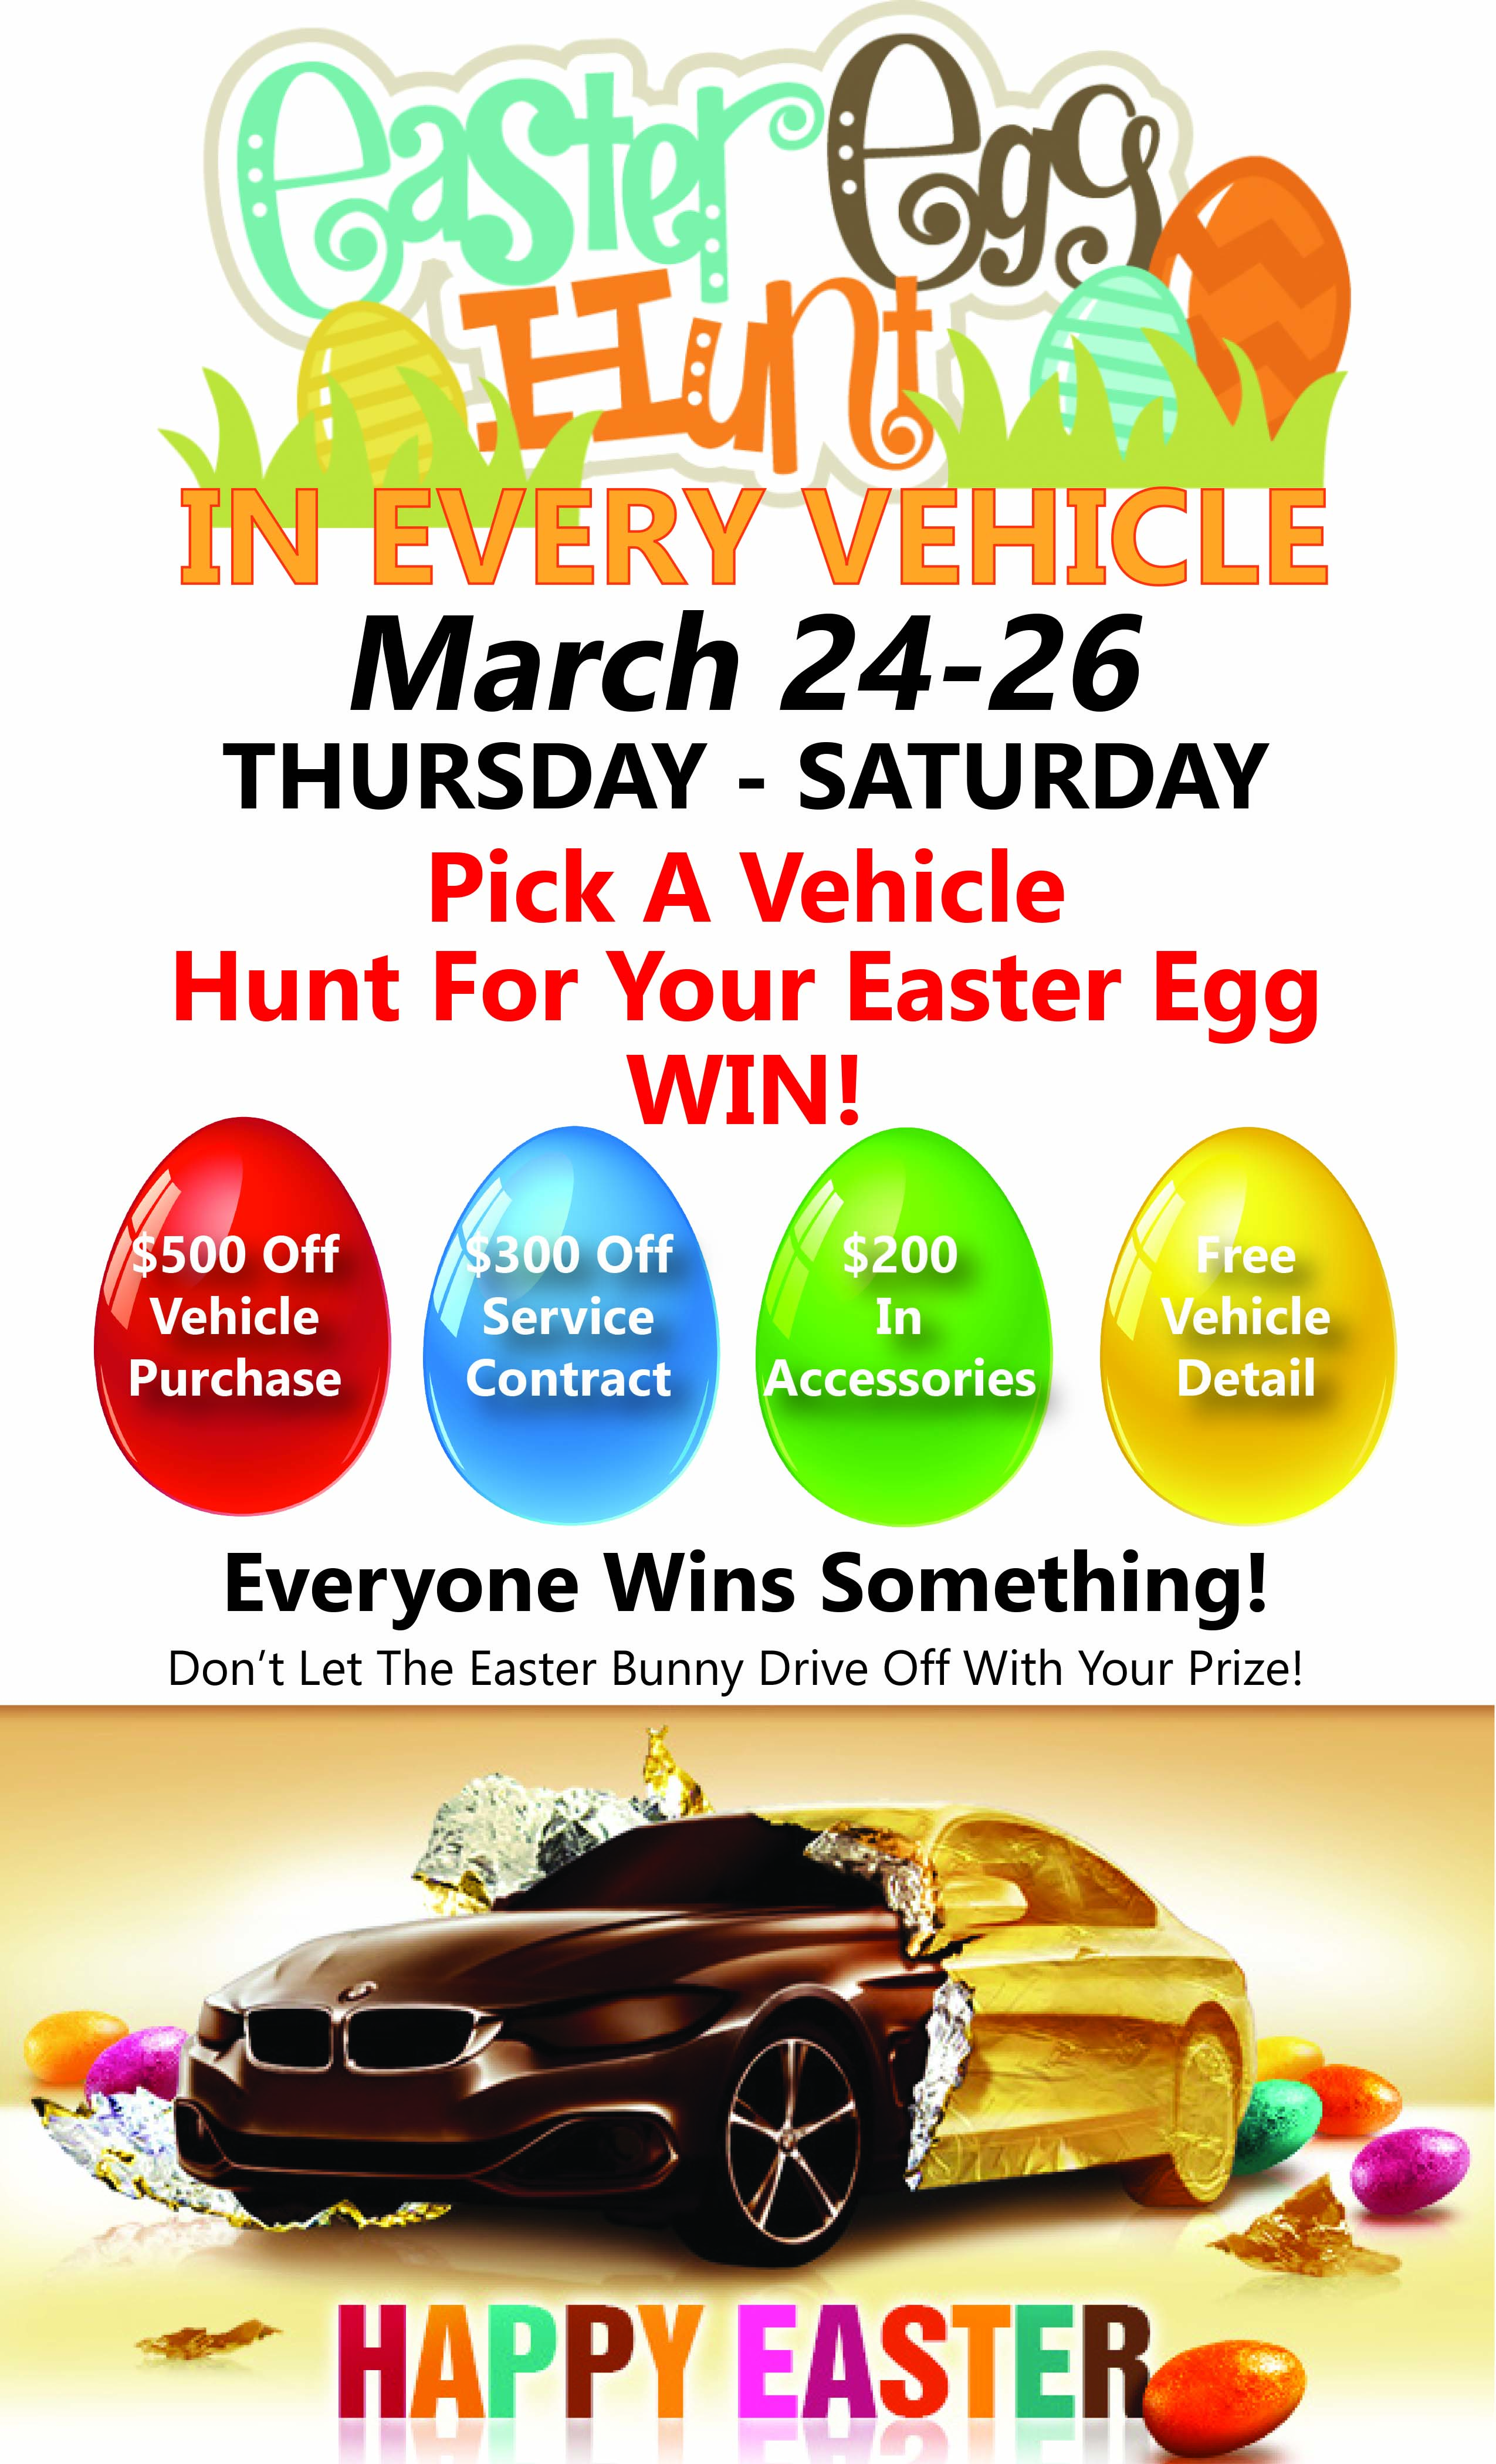 EASTER EGG HUNT - Beach Auto Brokers